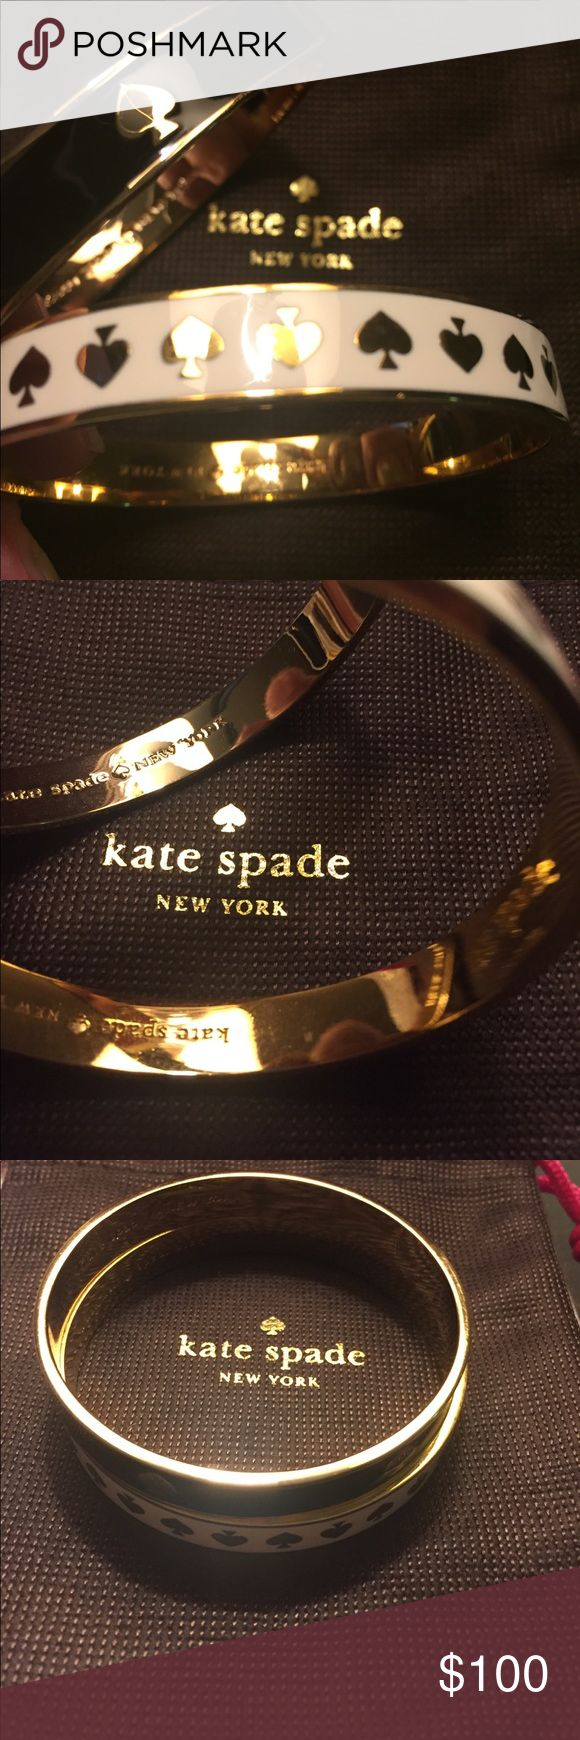 Kate Sapde bangle duo Perfect pair of bangles together pair with your fav watch for the hot blogger fave look! I take extremely good care of my things and jewelry I am sole owner of both of these! Excellent worn condition - this listing is for both plus the dust bag! kate spade Jewelry Bracelets